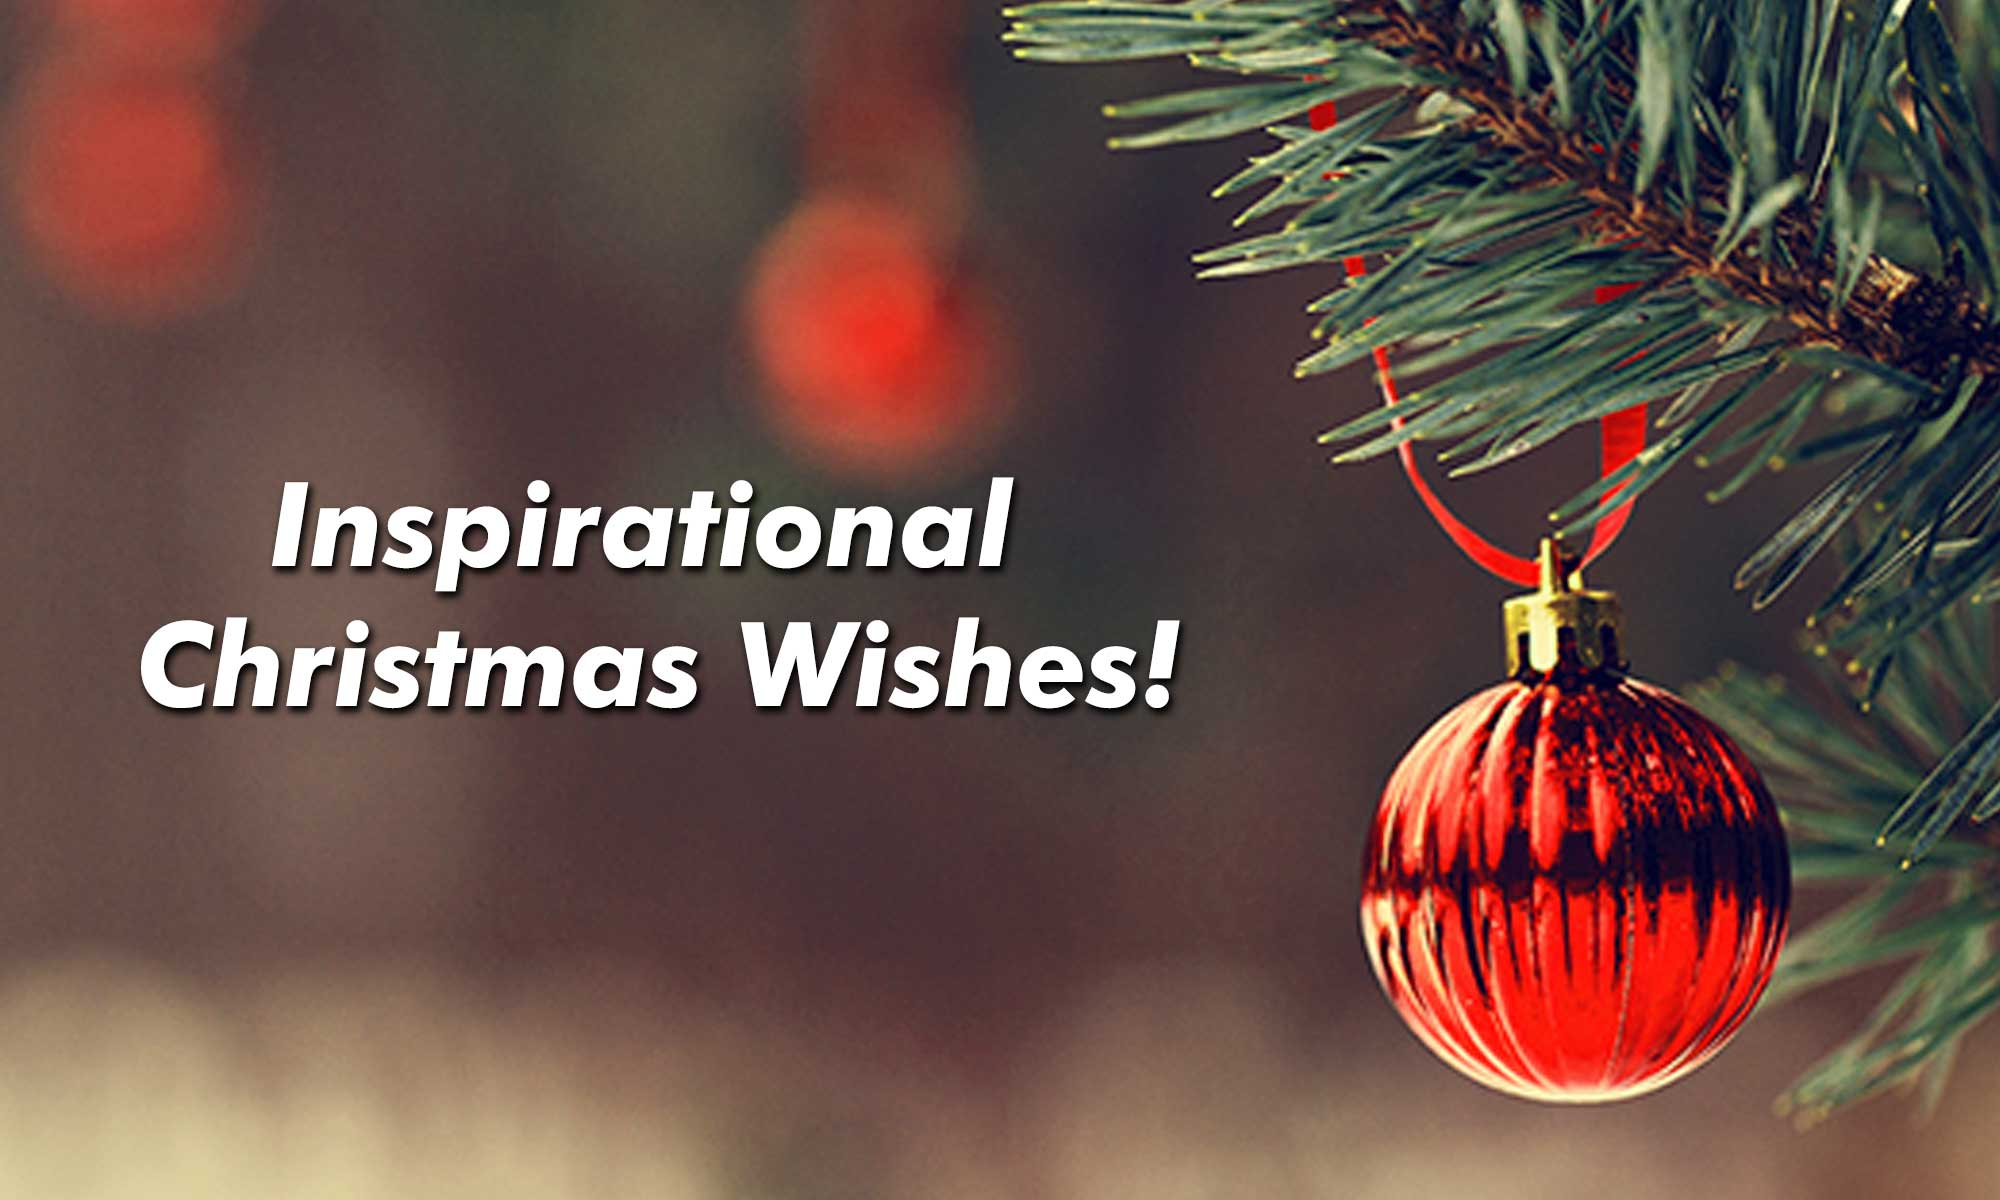 Chrishtmas Day 2019: Merry Christmas Wishes, Quotes and ...